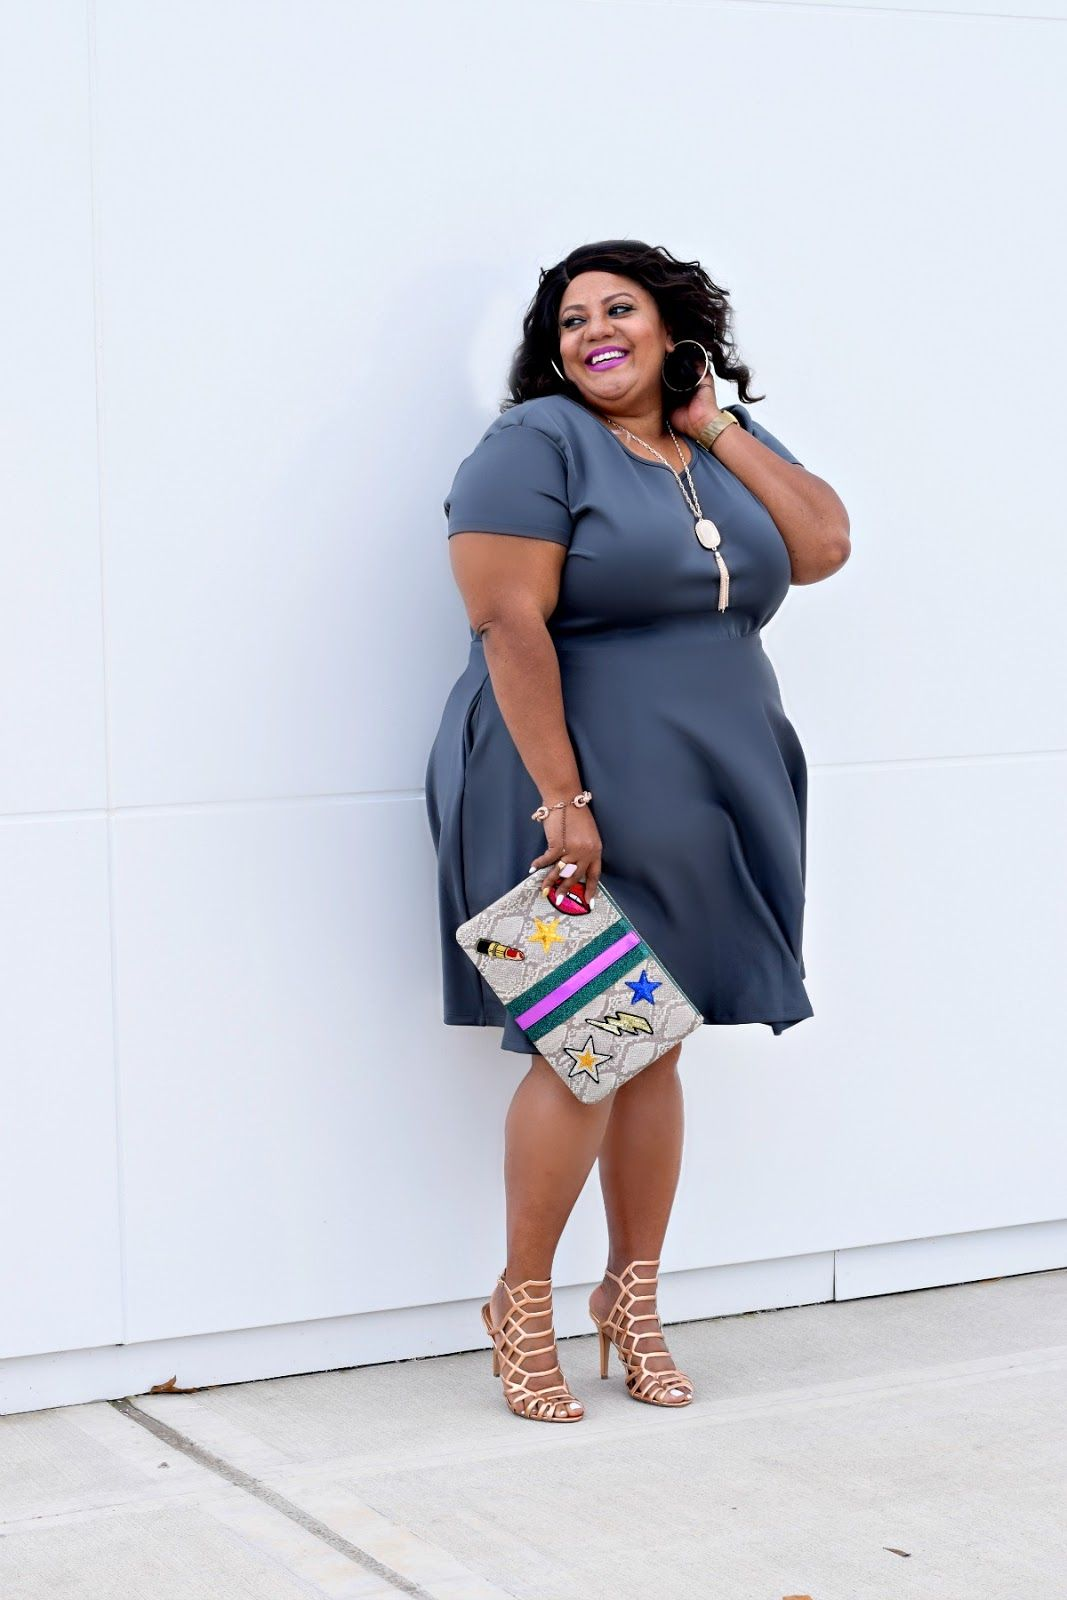 1280987bdb2 Looking for more plus size fashion inspiration  Today s plus size blogger  spotlight is on Houston